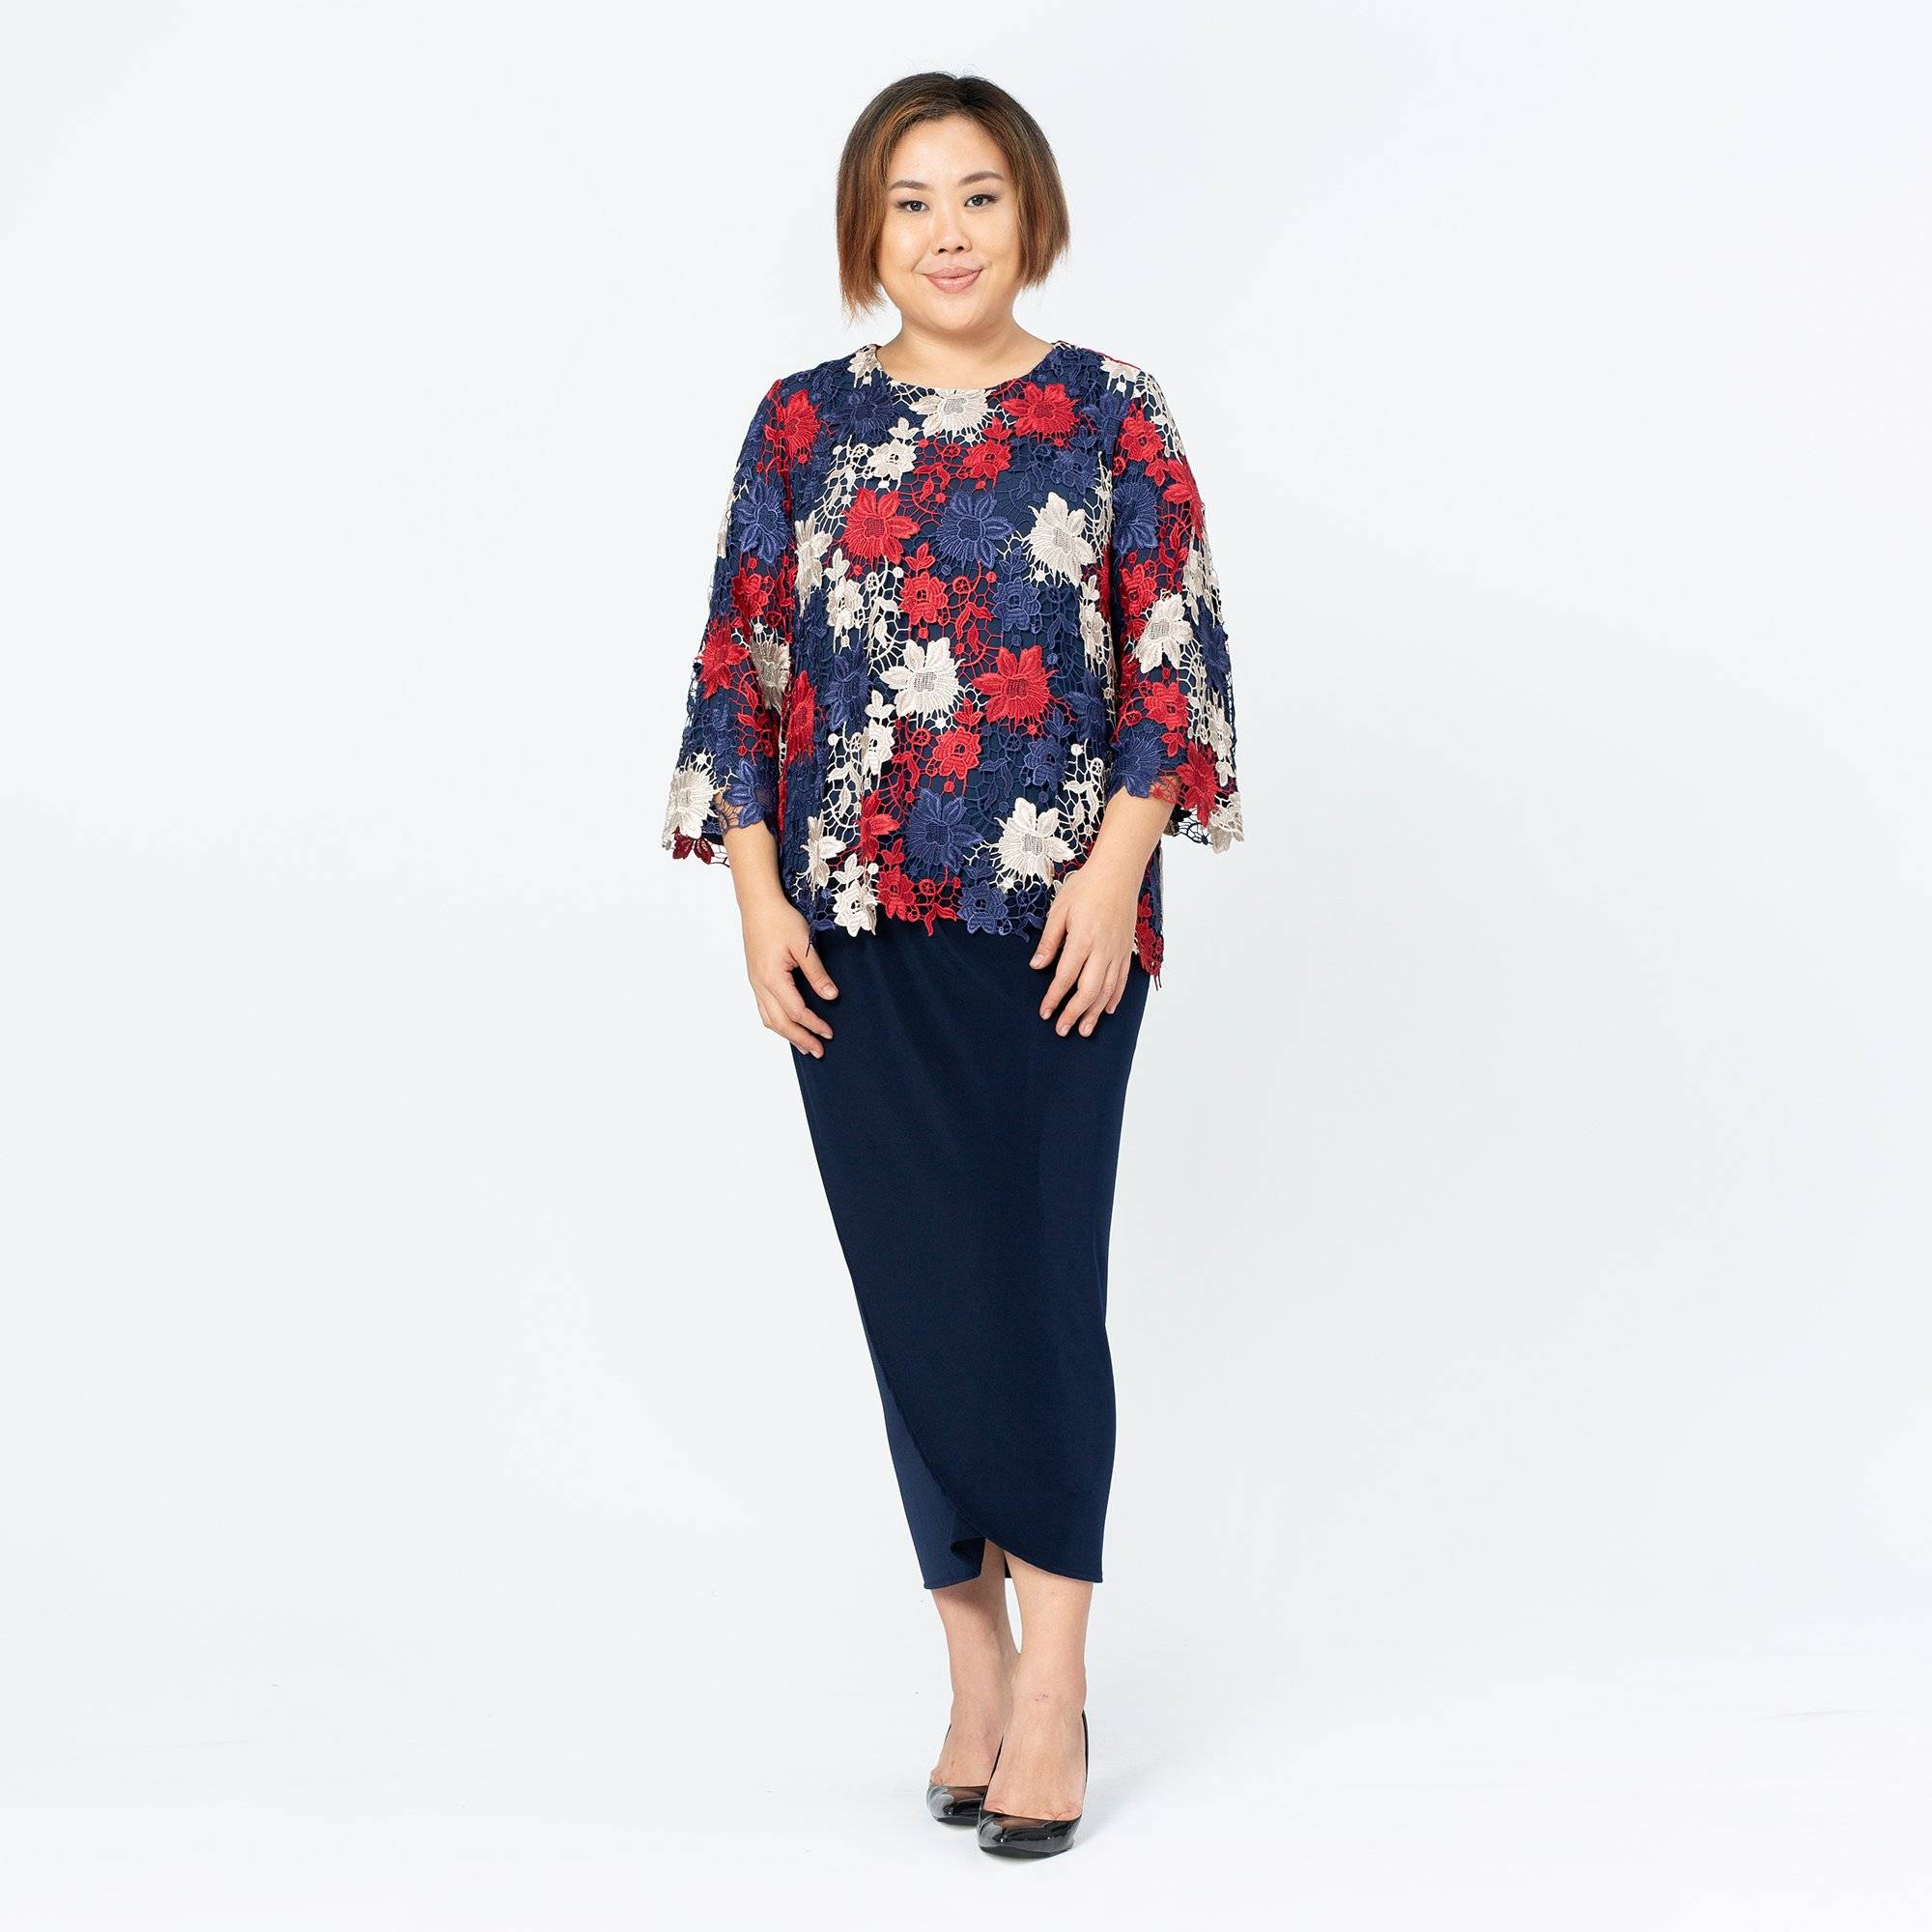 MS. READ Lace Boat Neck Top